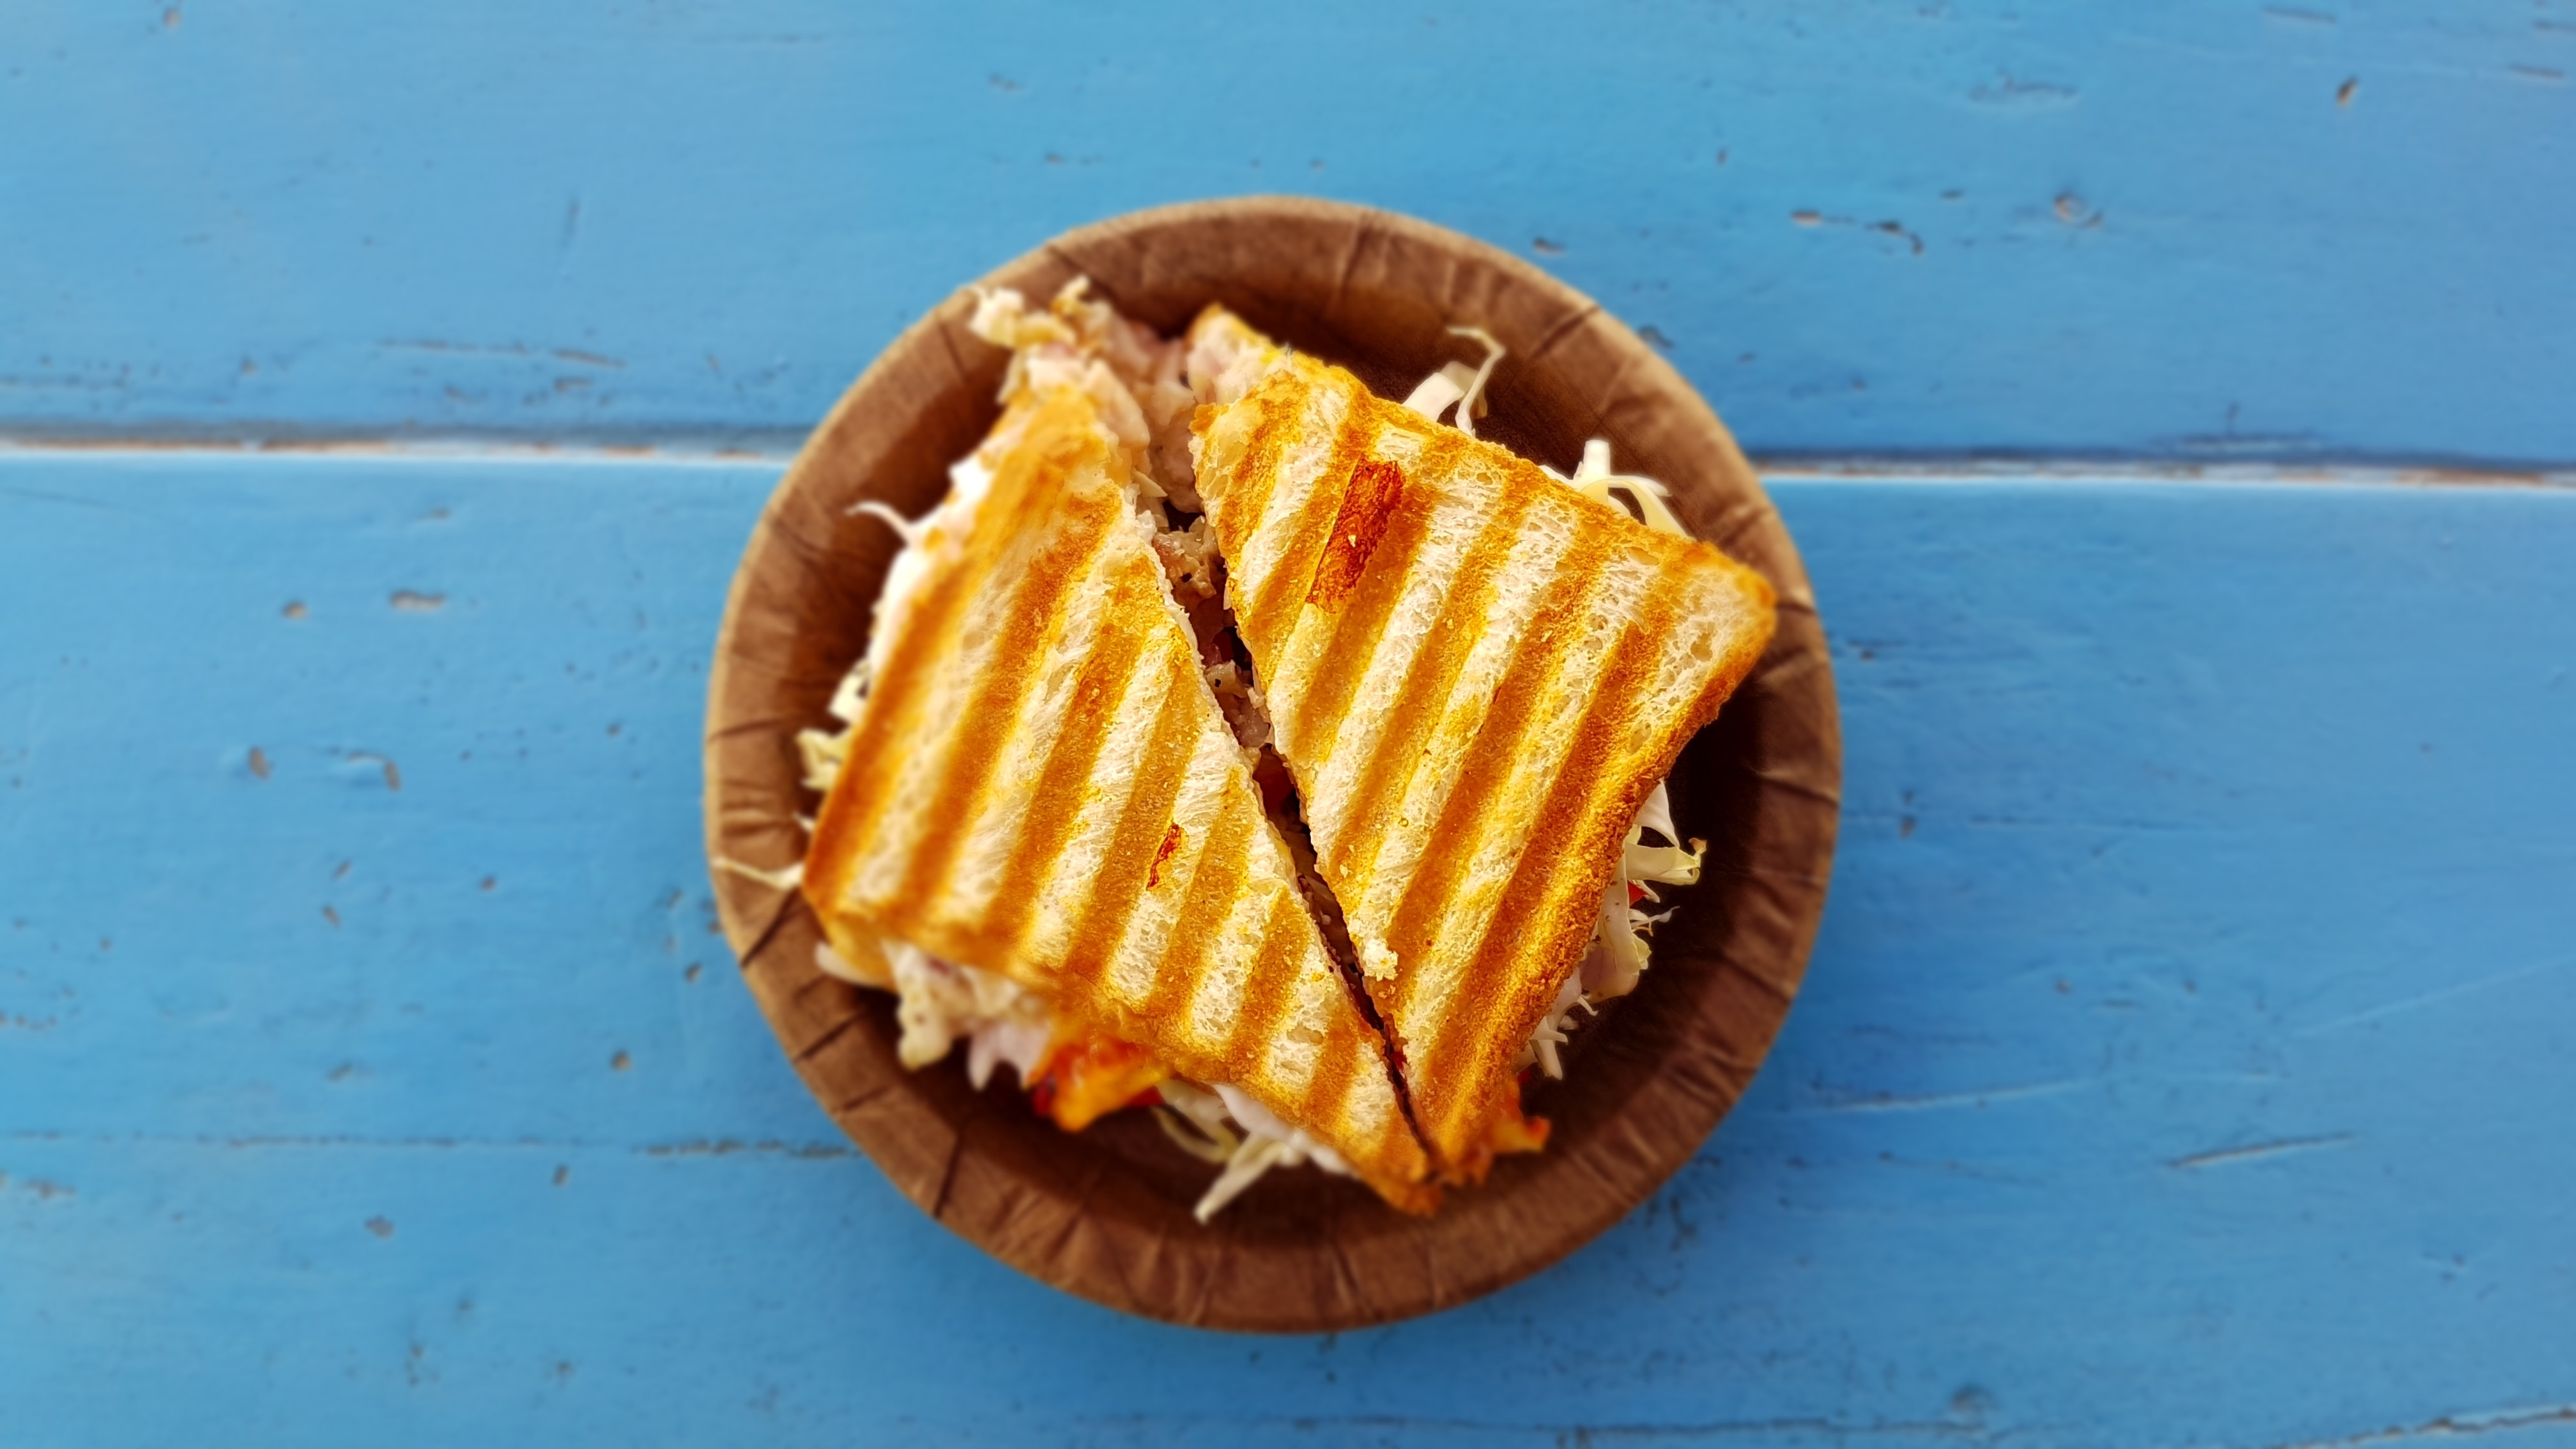 Grilled panini sandwich on a blue background